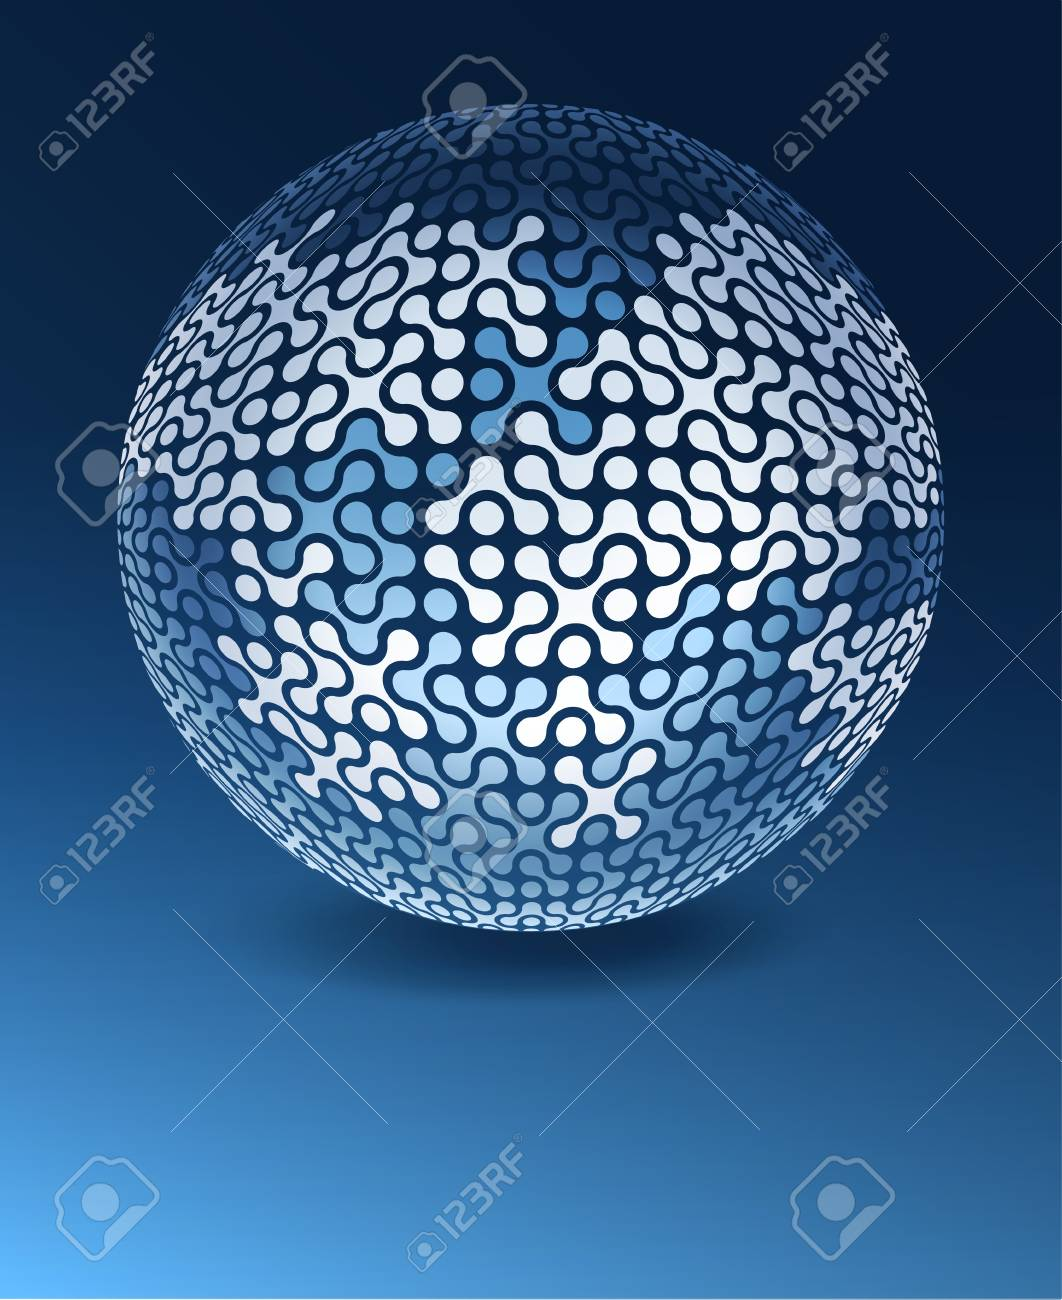 Globe network concept with copy space. Stock Photo - 14709054